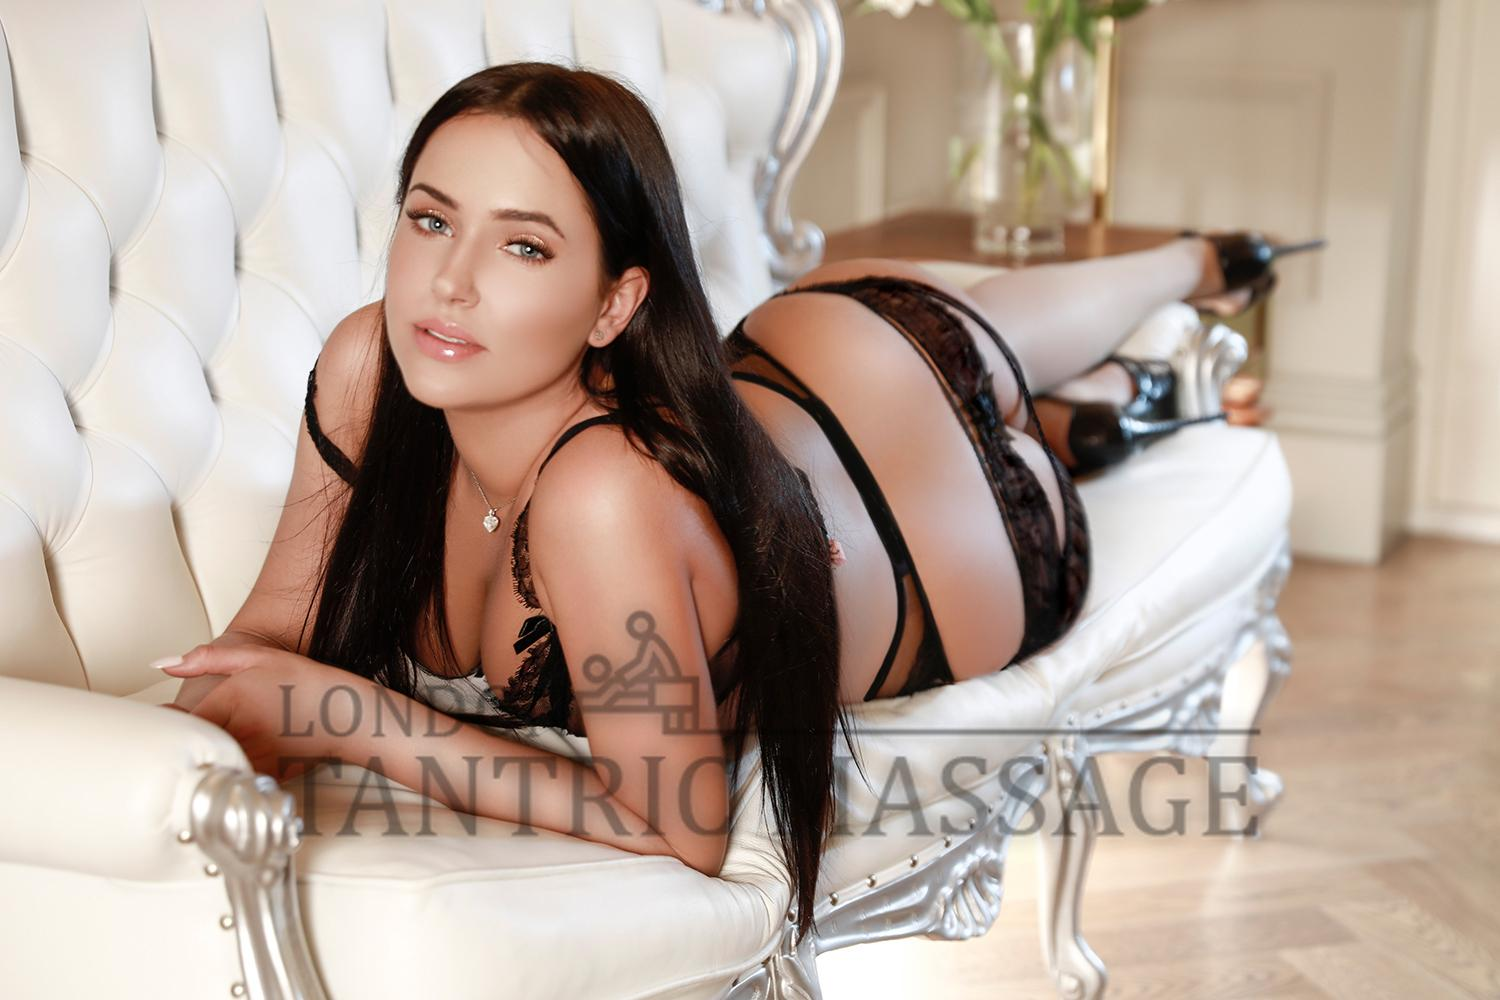 Oleksandra from London Tantric Massage